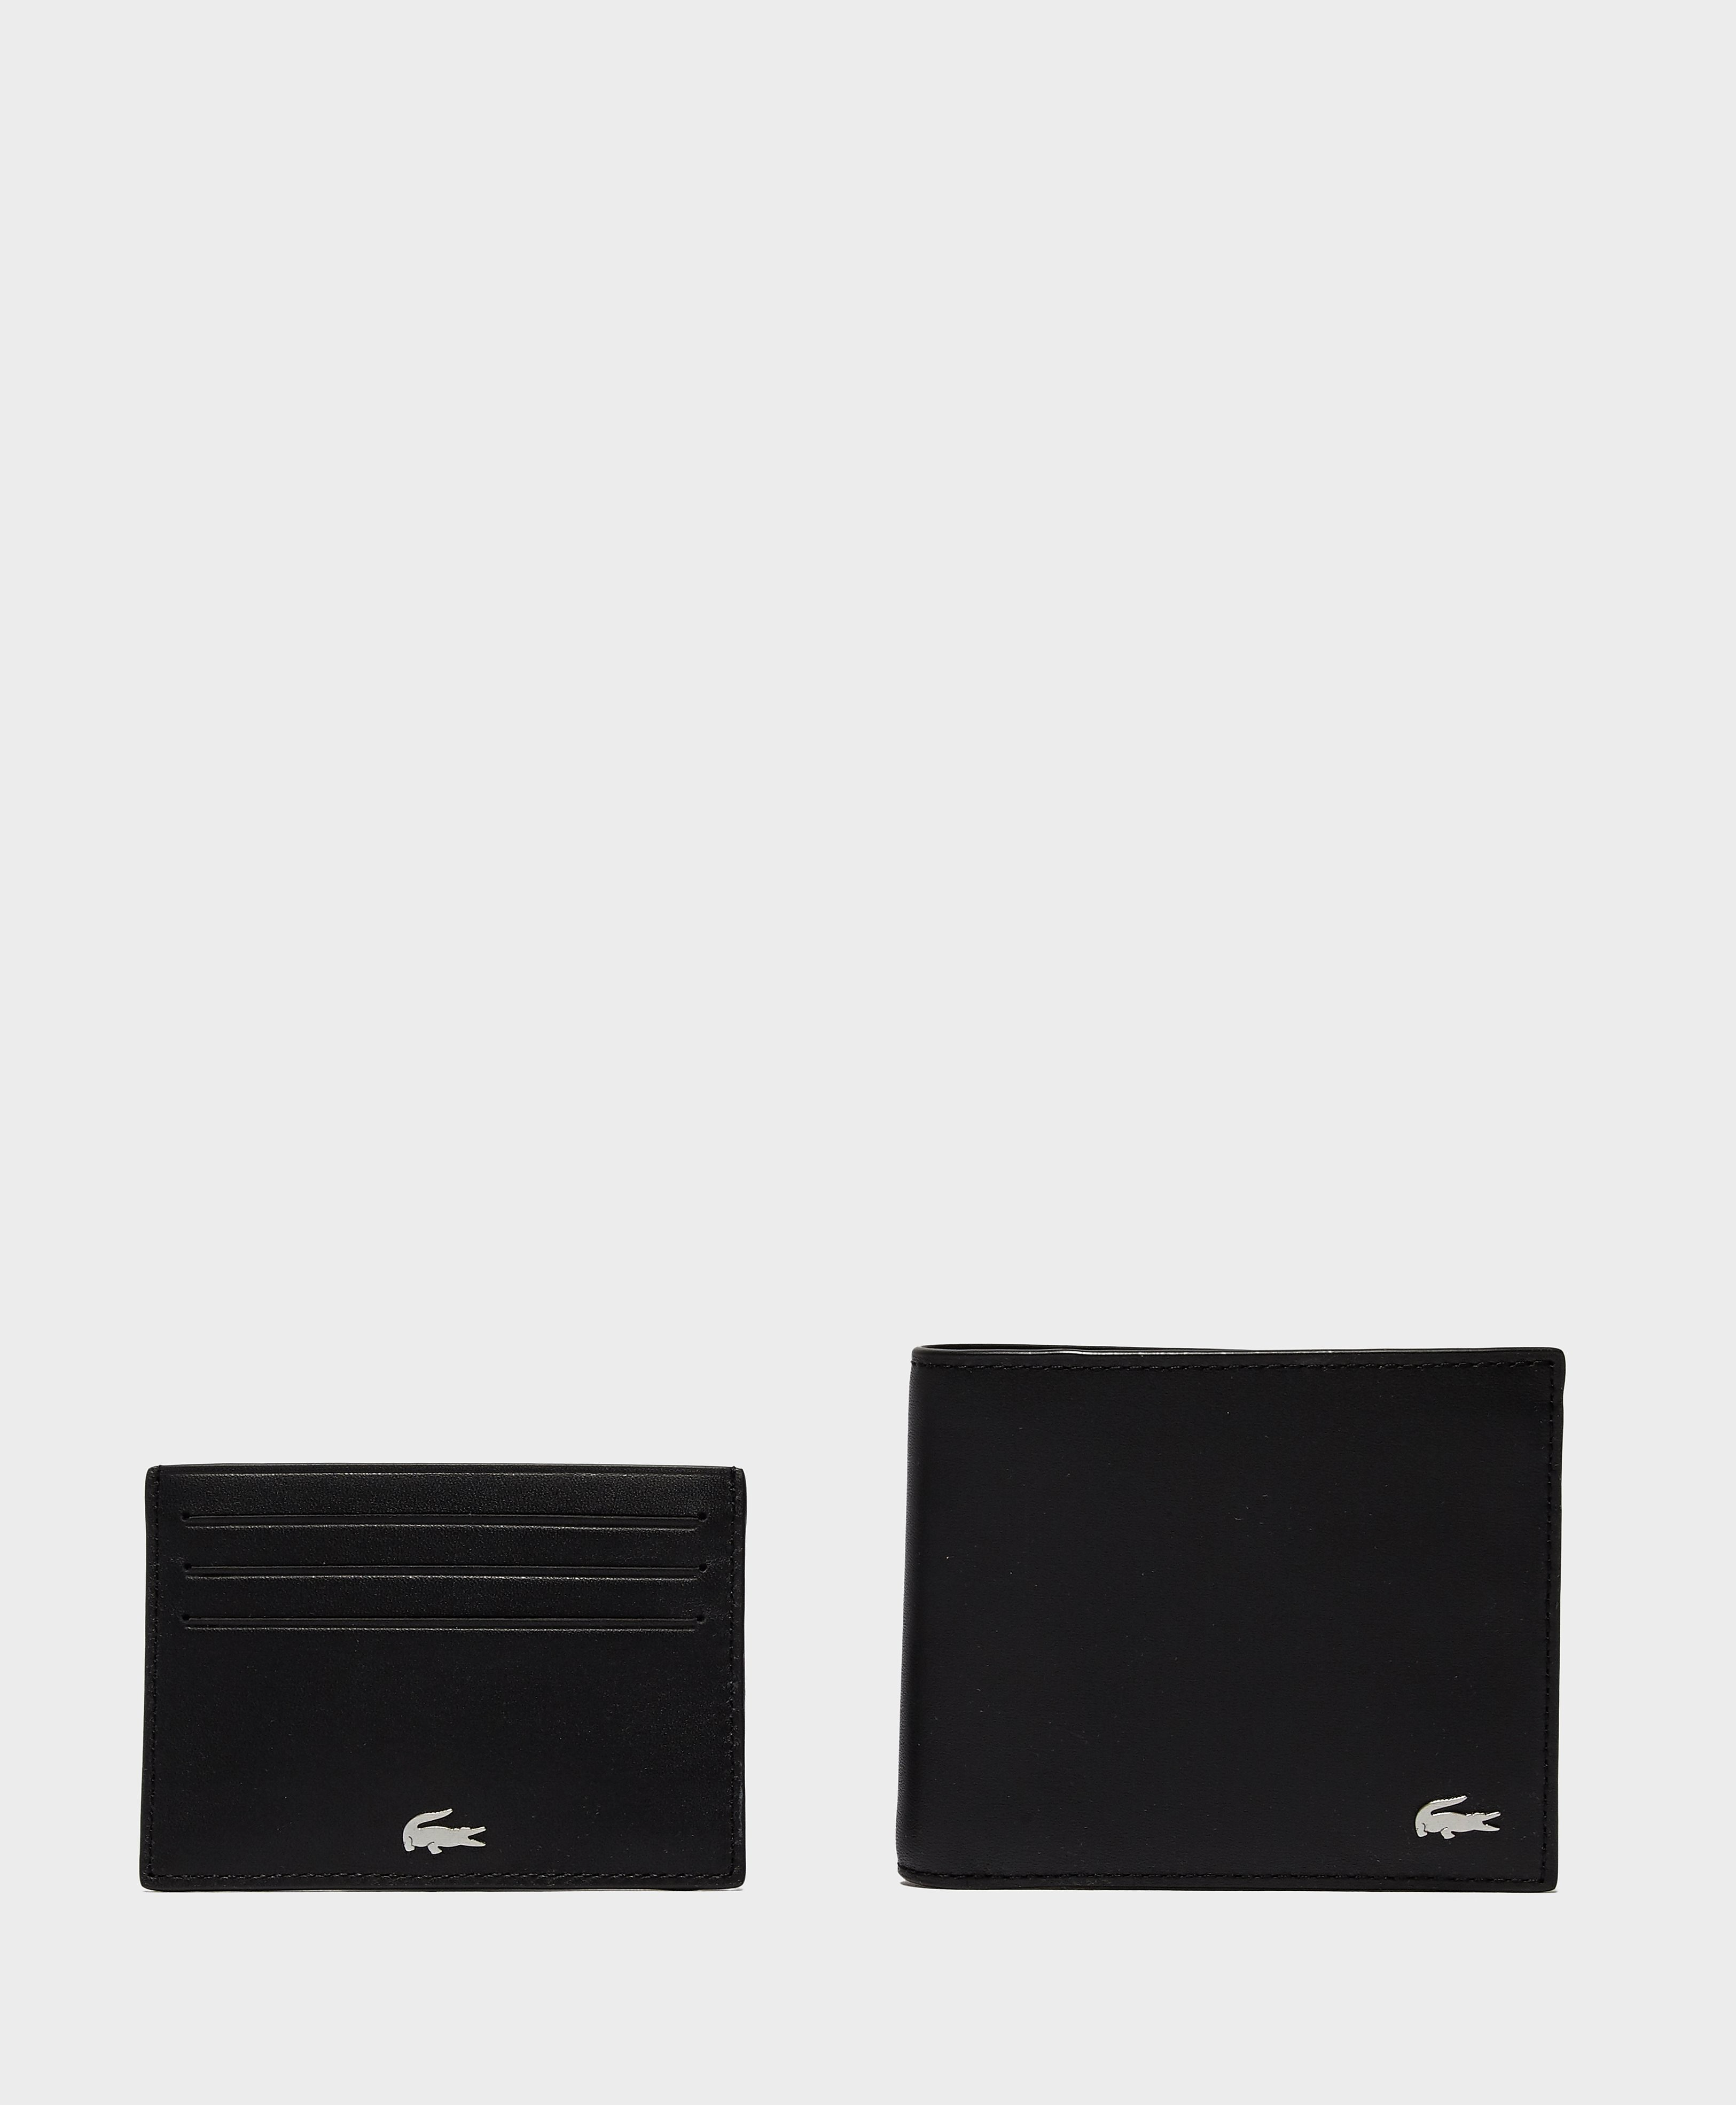 Lacoste Wallet and Card Holder Set